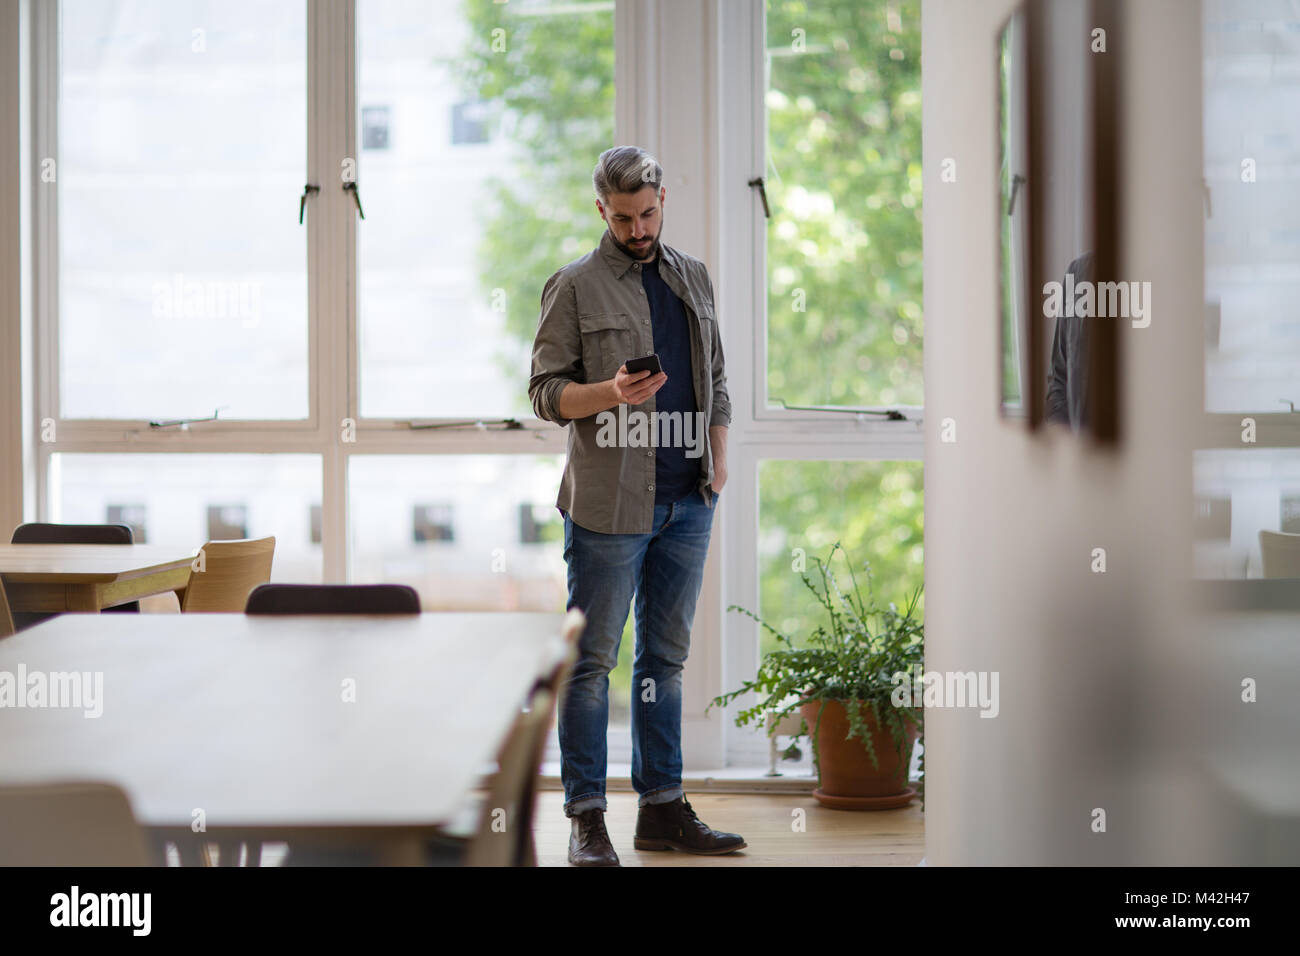 Businessman in empty office looking at smartphone - Stock Image